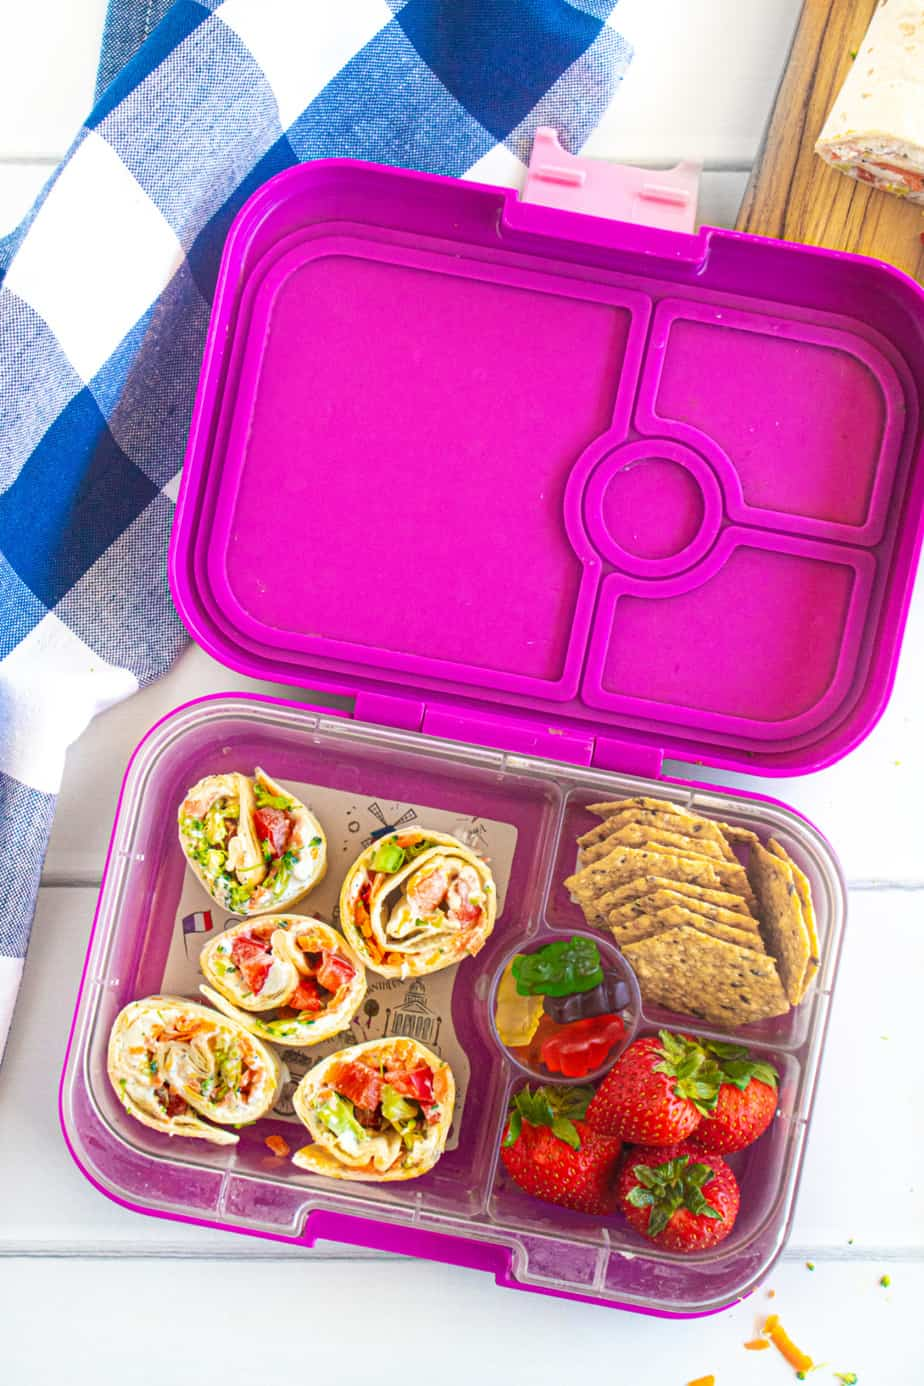 A child's lunchbox full of vegetable cheese pinwheels, strawberries, crackers and gummy bears.